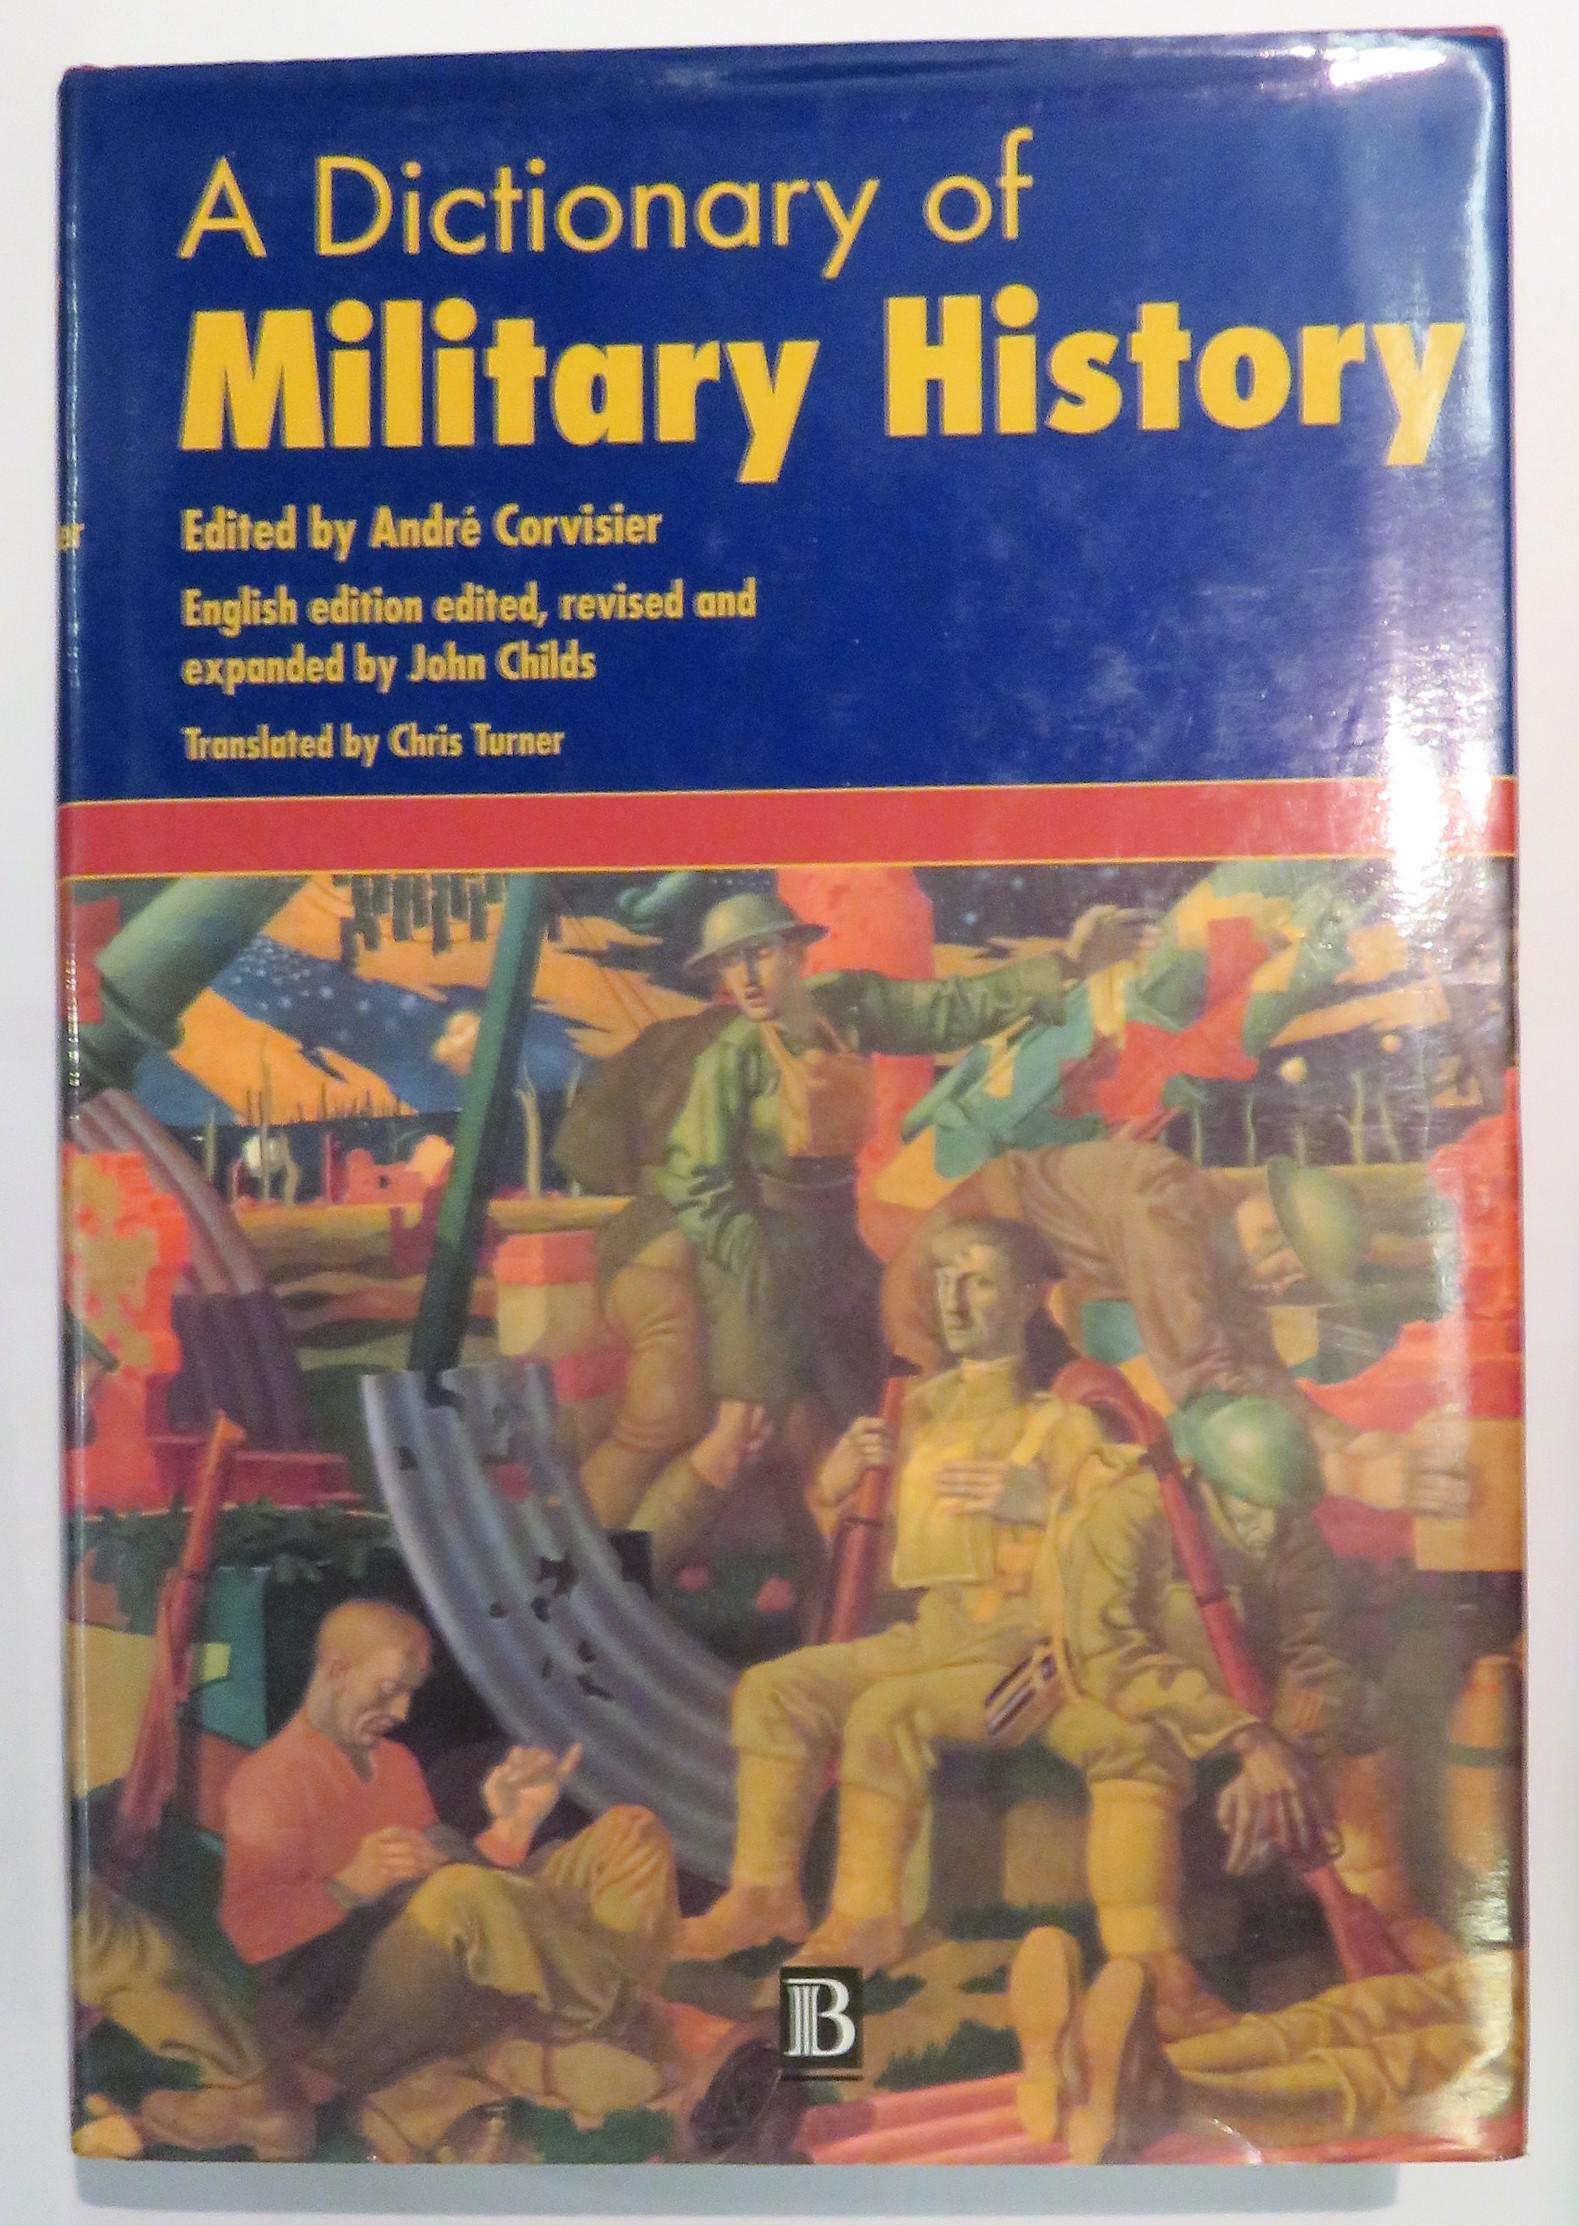 A Dictionary of Military History